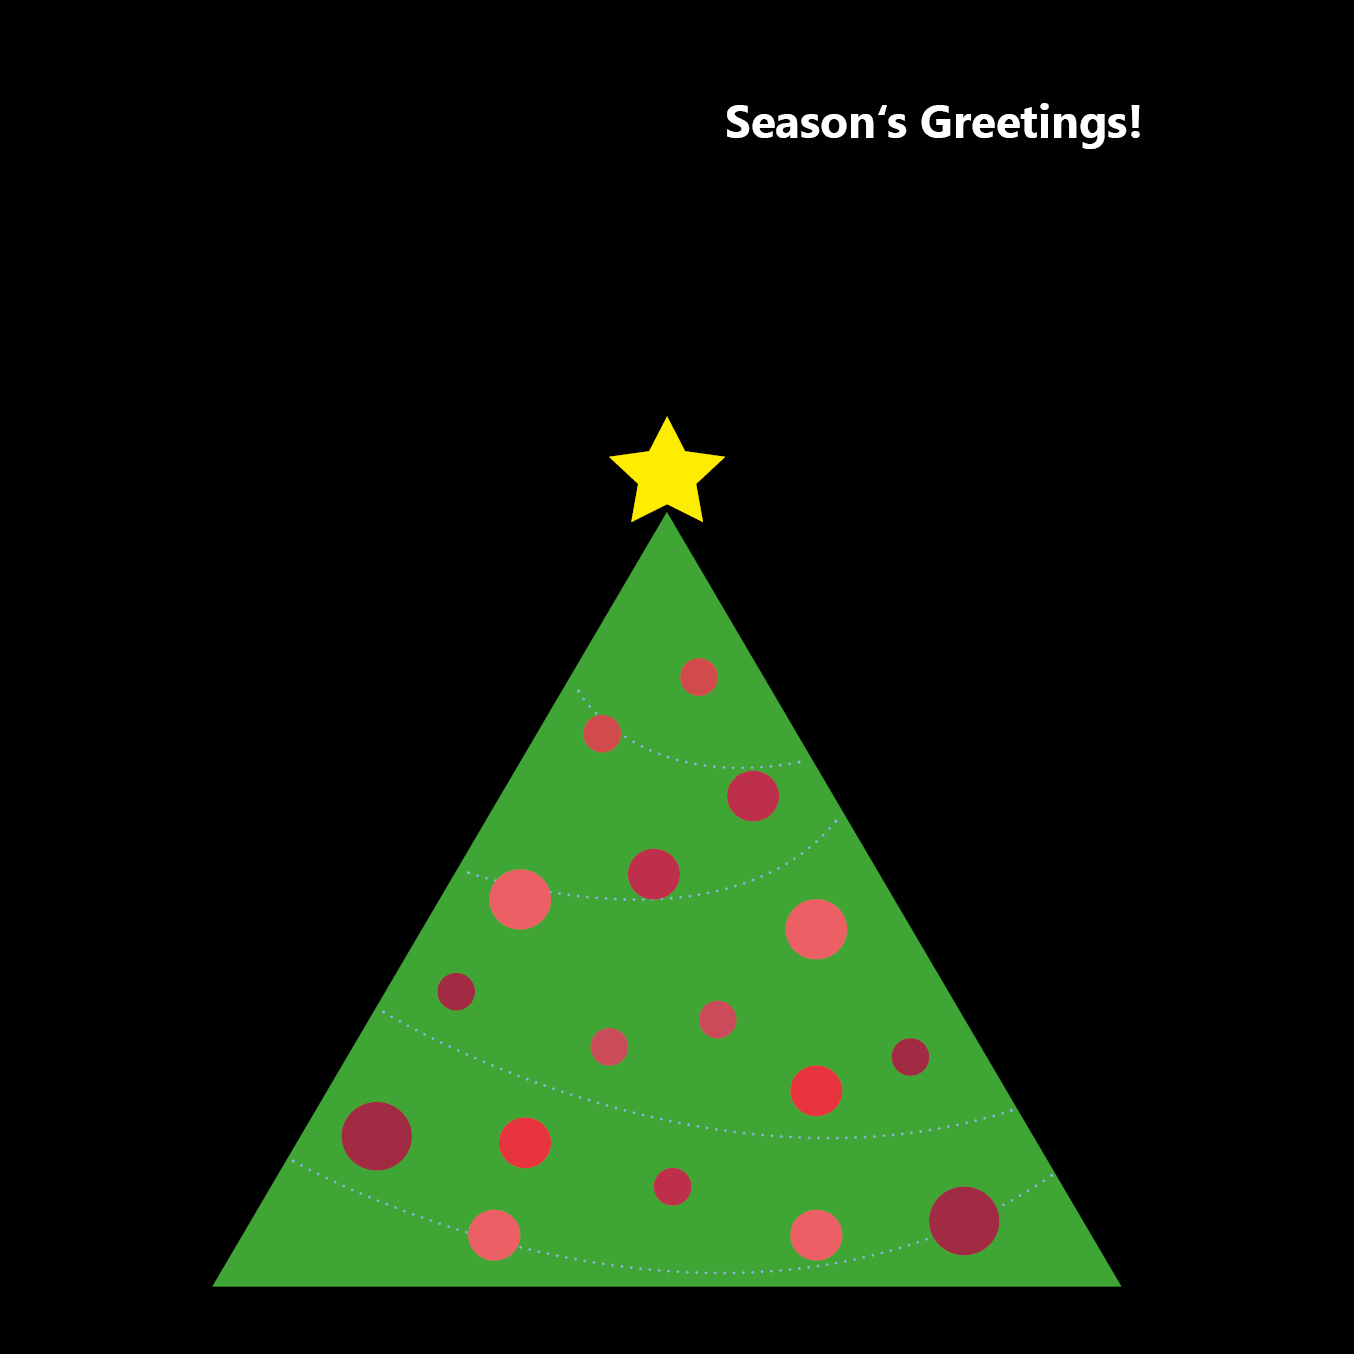 Enkom Seasons Greetings